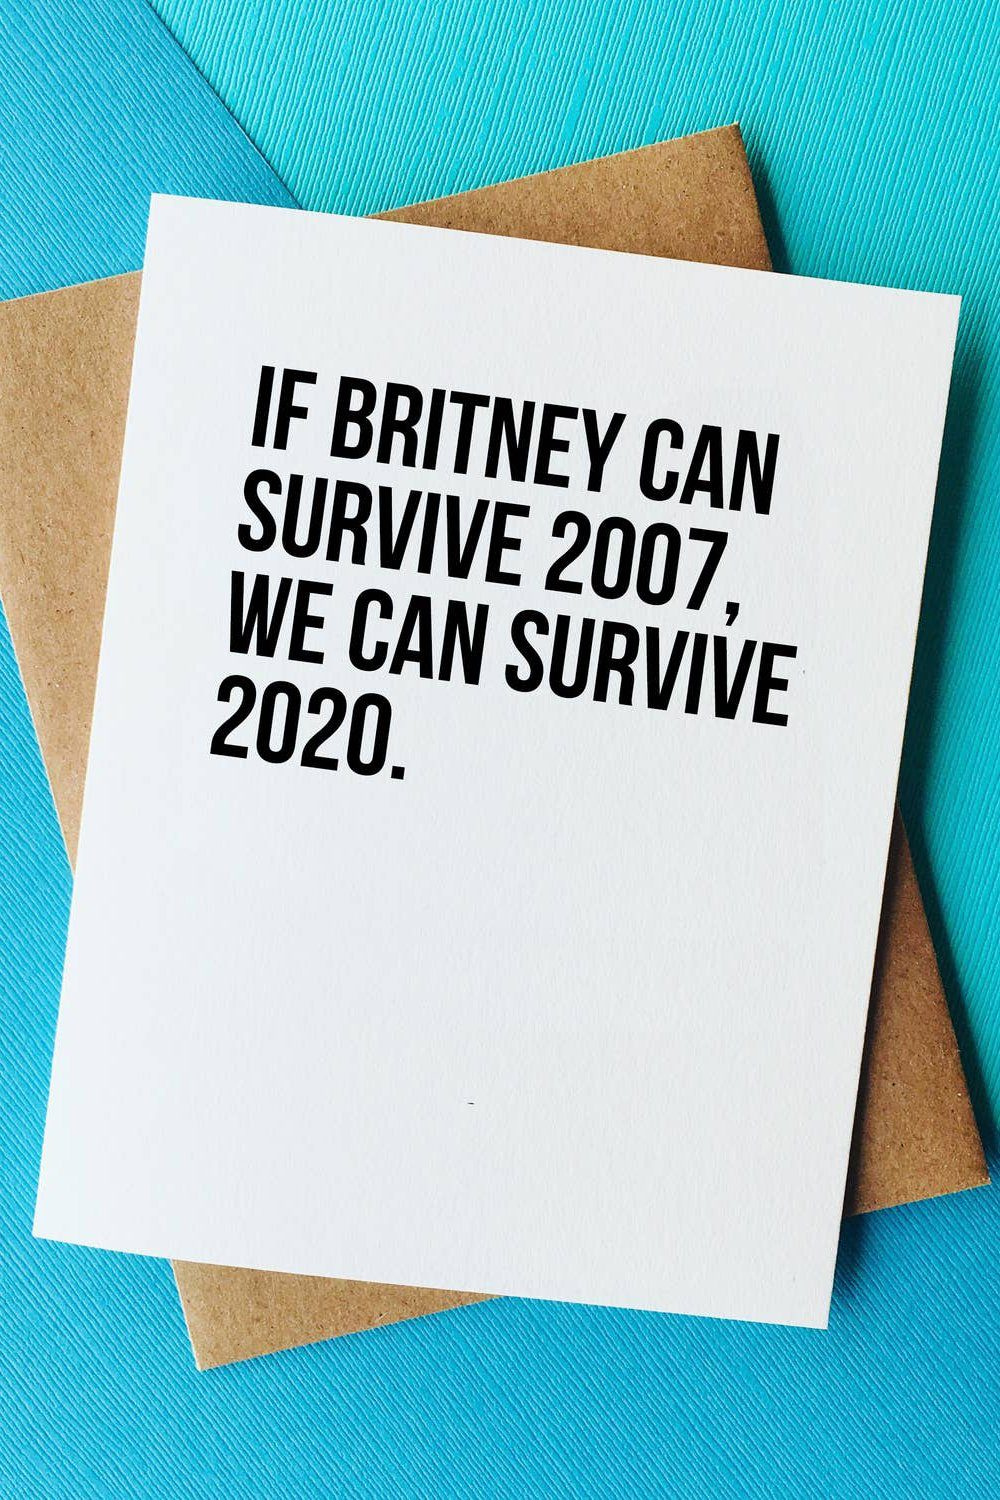 Britney vs 2020 Card